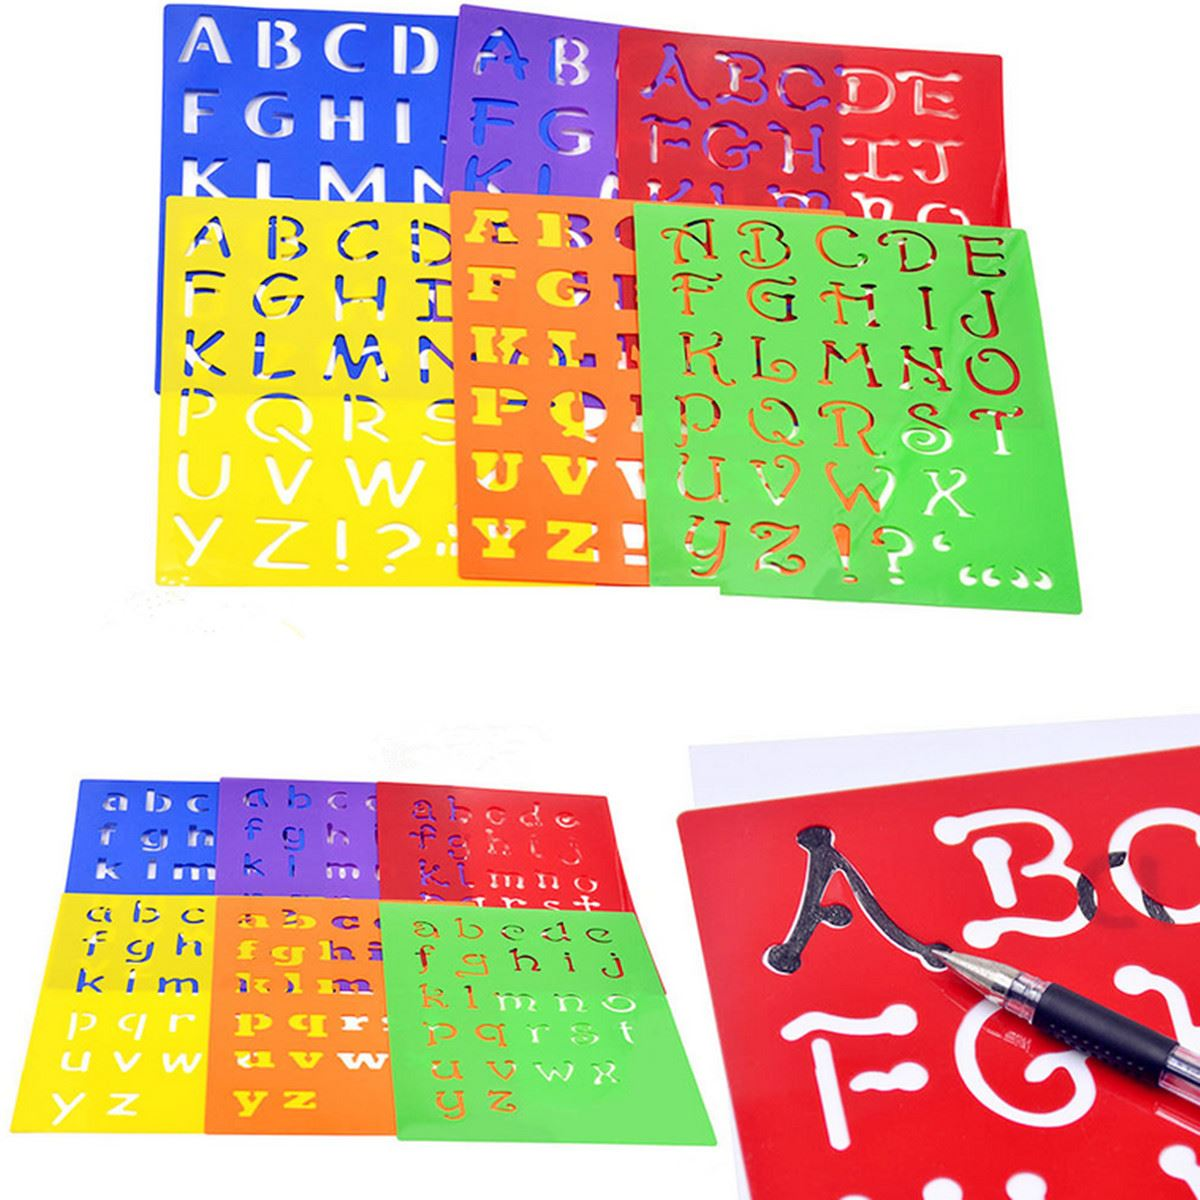 kids capitall alphabet letter drawing templates 6pcs washable stencils children educational toys plastic painting drawing toys - Free Kids Stencils